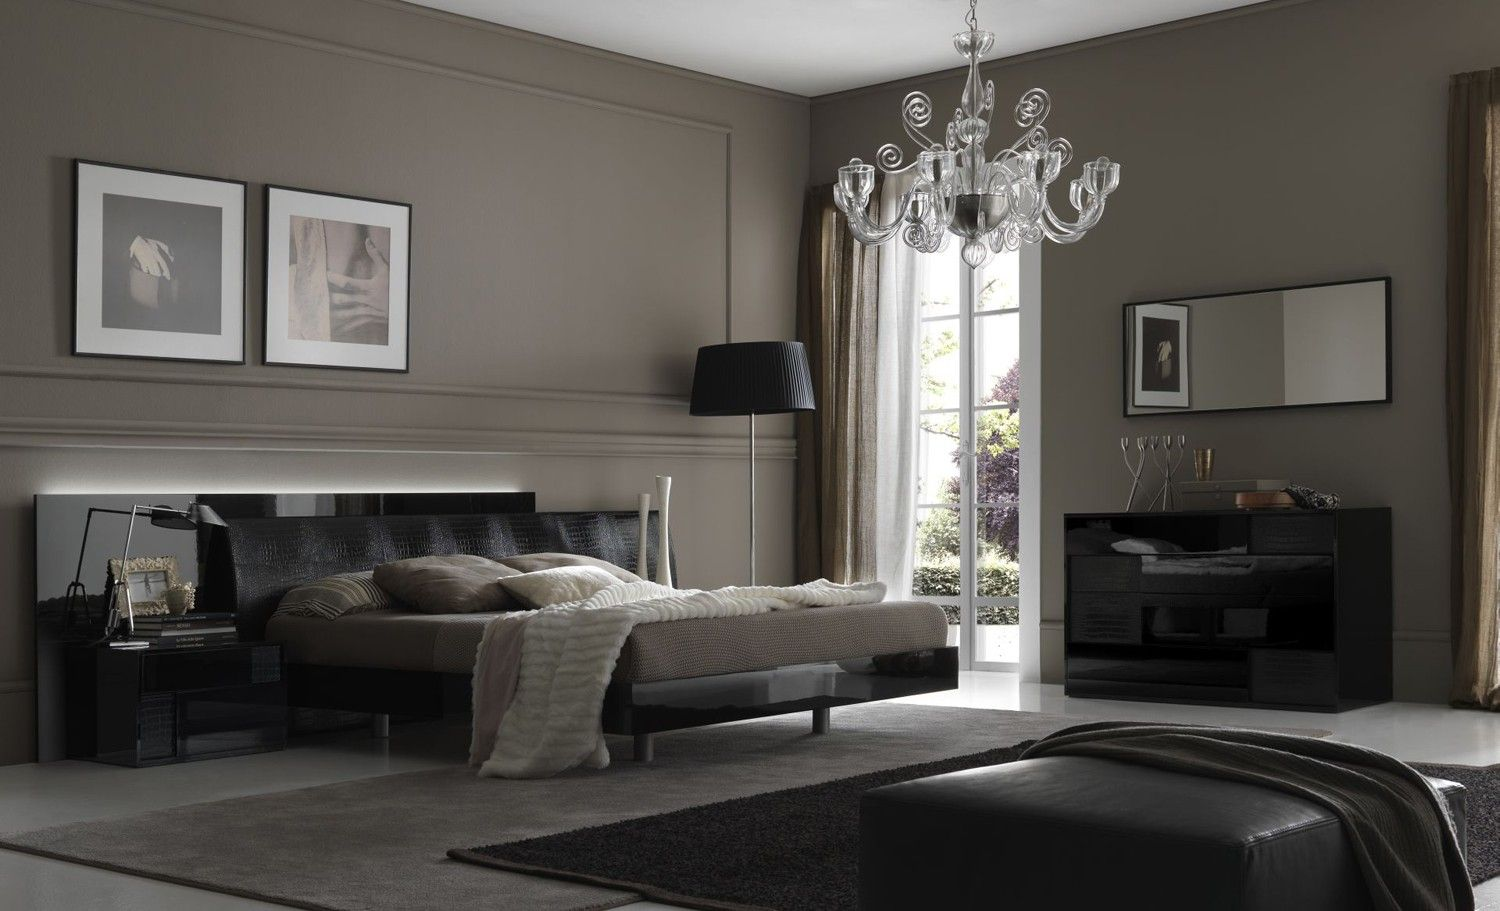 Dormitorios Matrimonio Rusticos 15 Modern Bedroom Ideas Modern Bedroom Designs Recamara